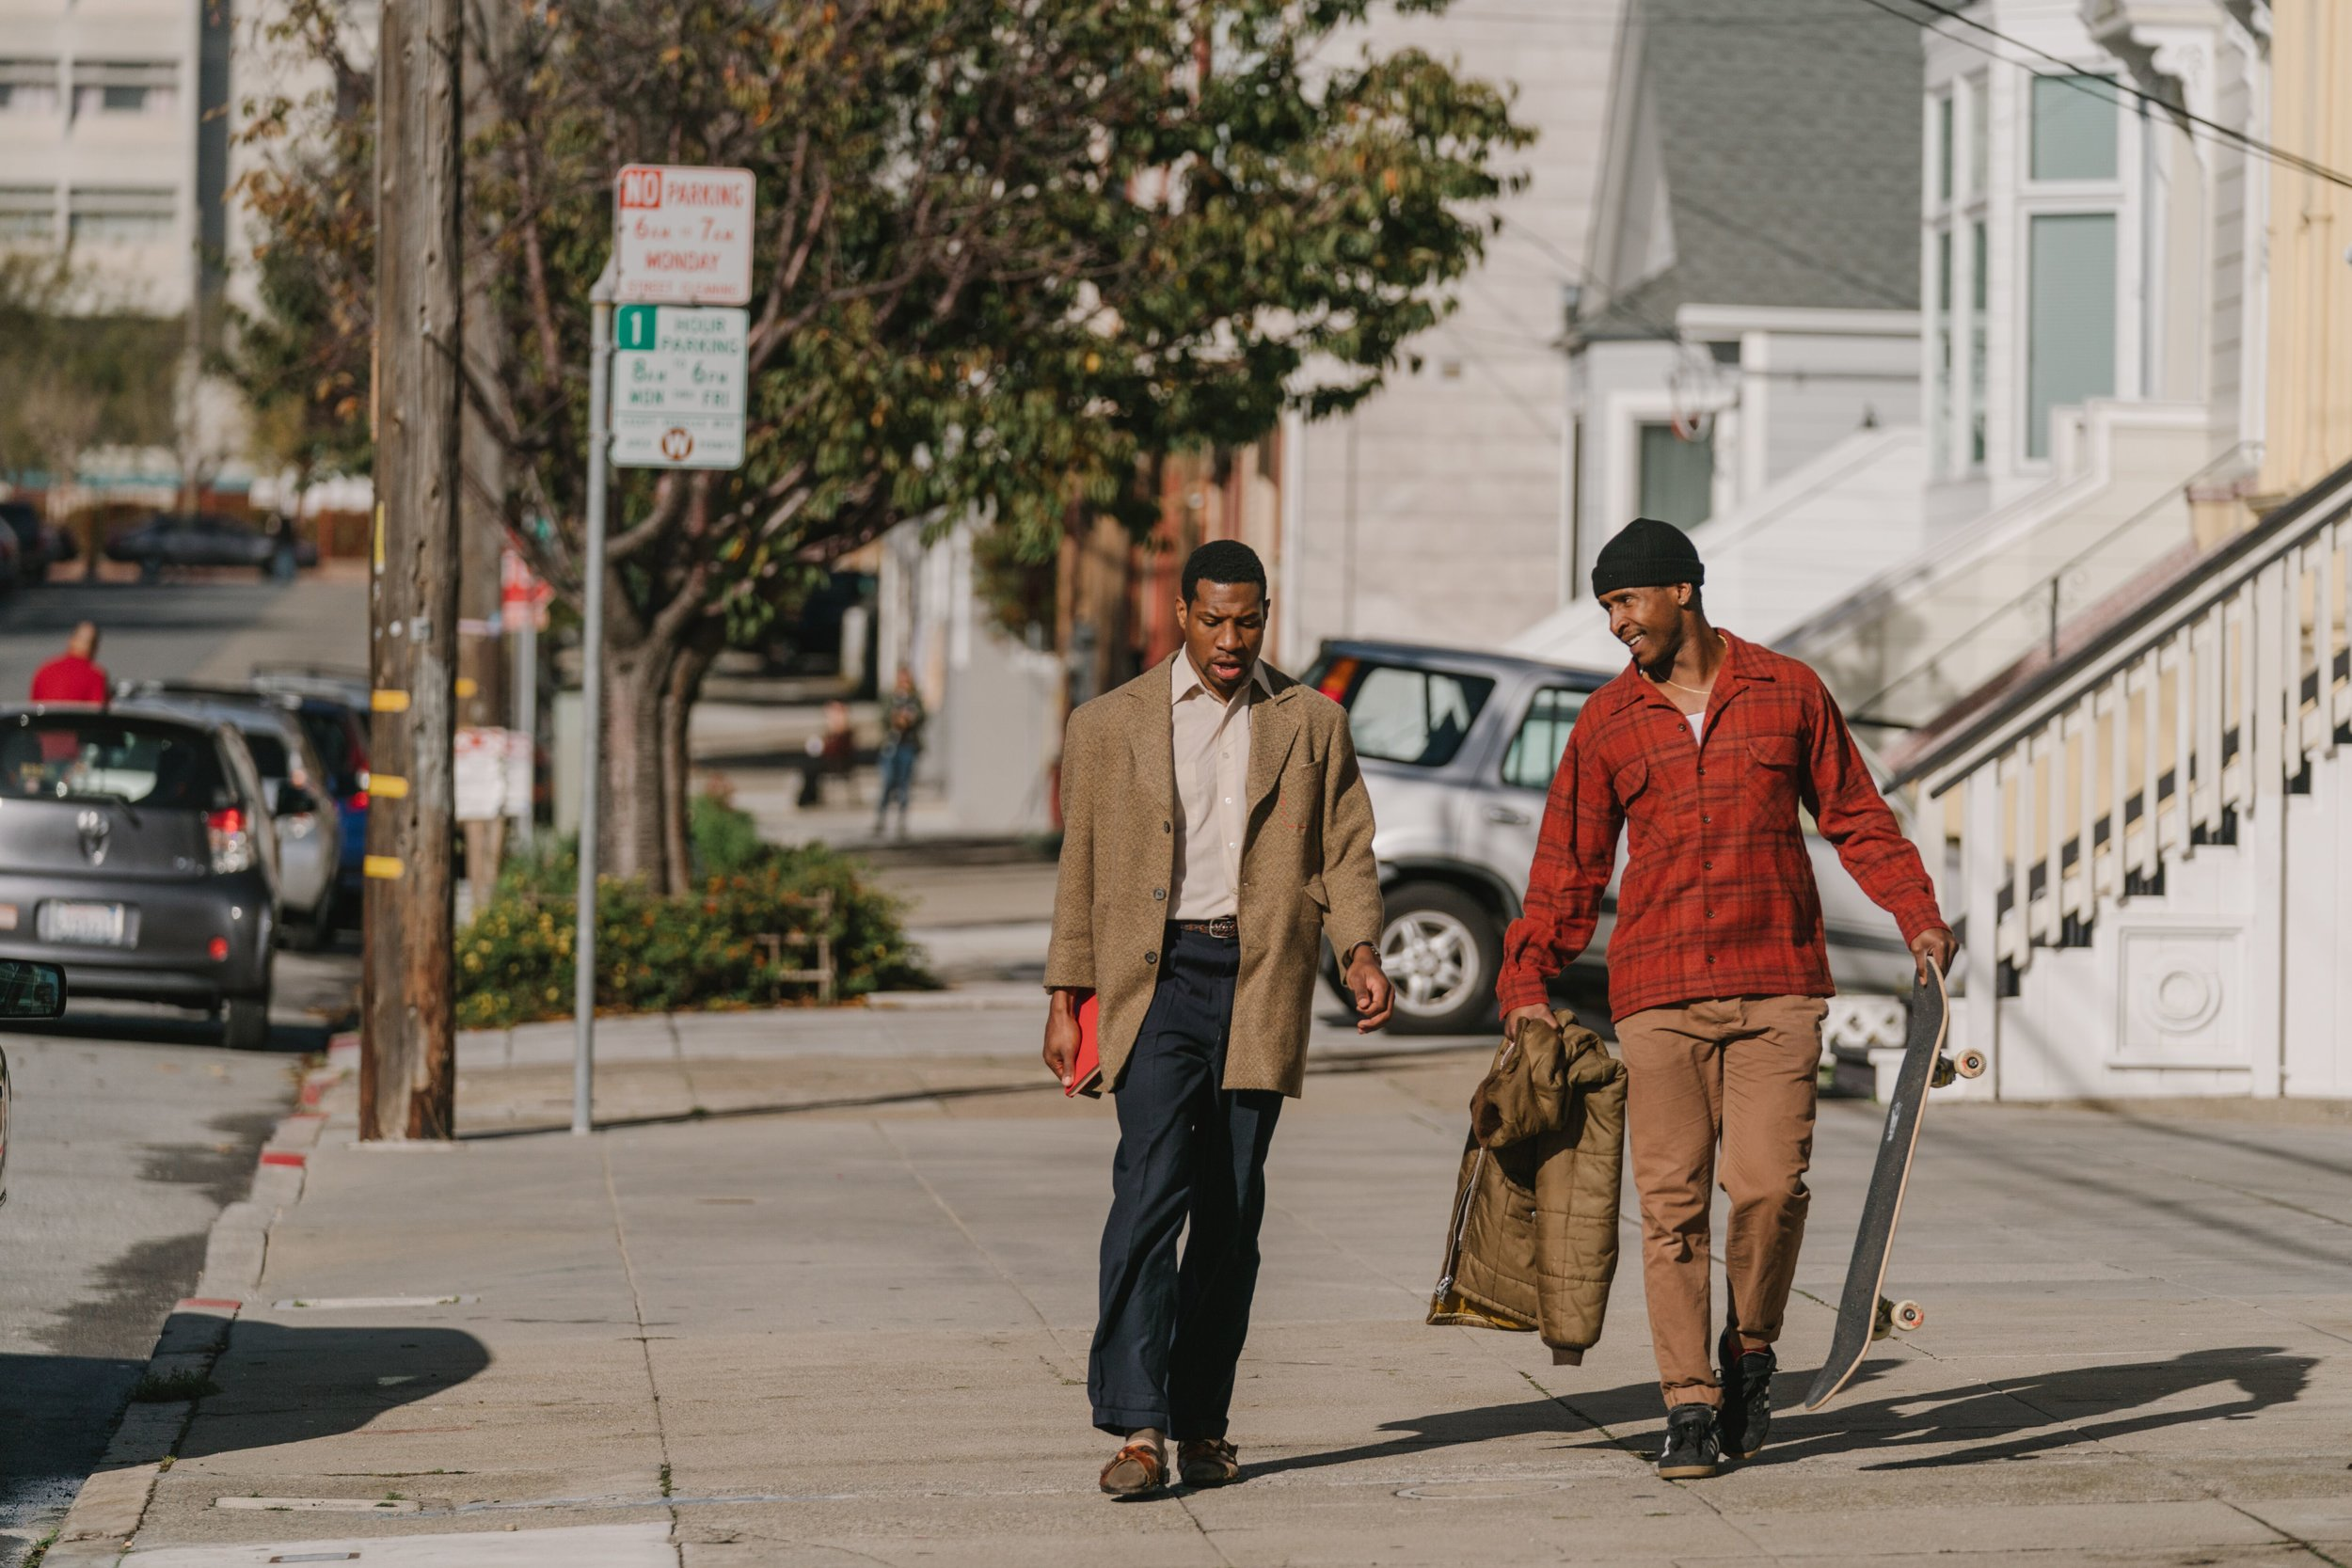 Jonathan Majors and Jimmie Fails in the week's best reviewed movie The Last Black Man in San Francisco